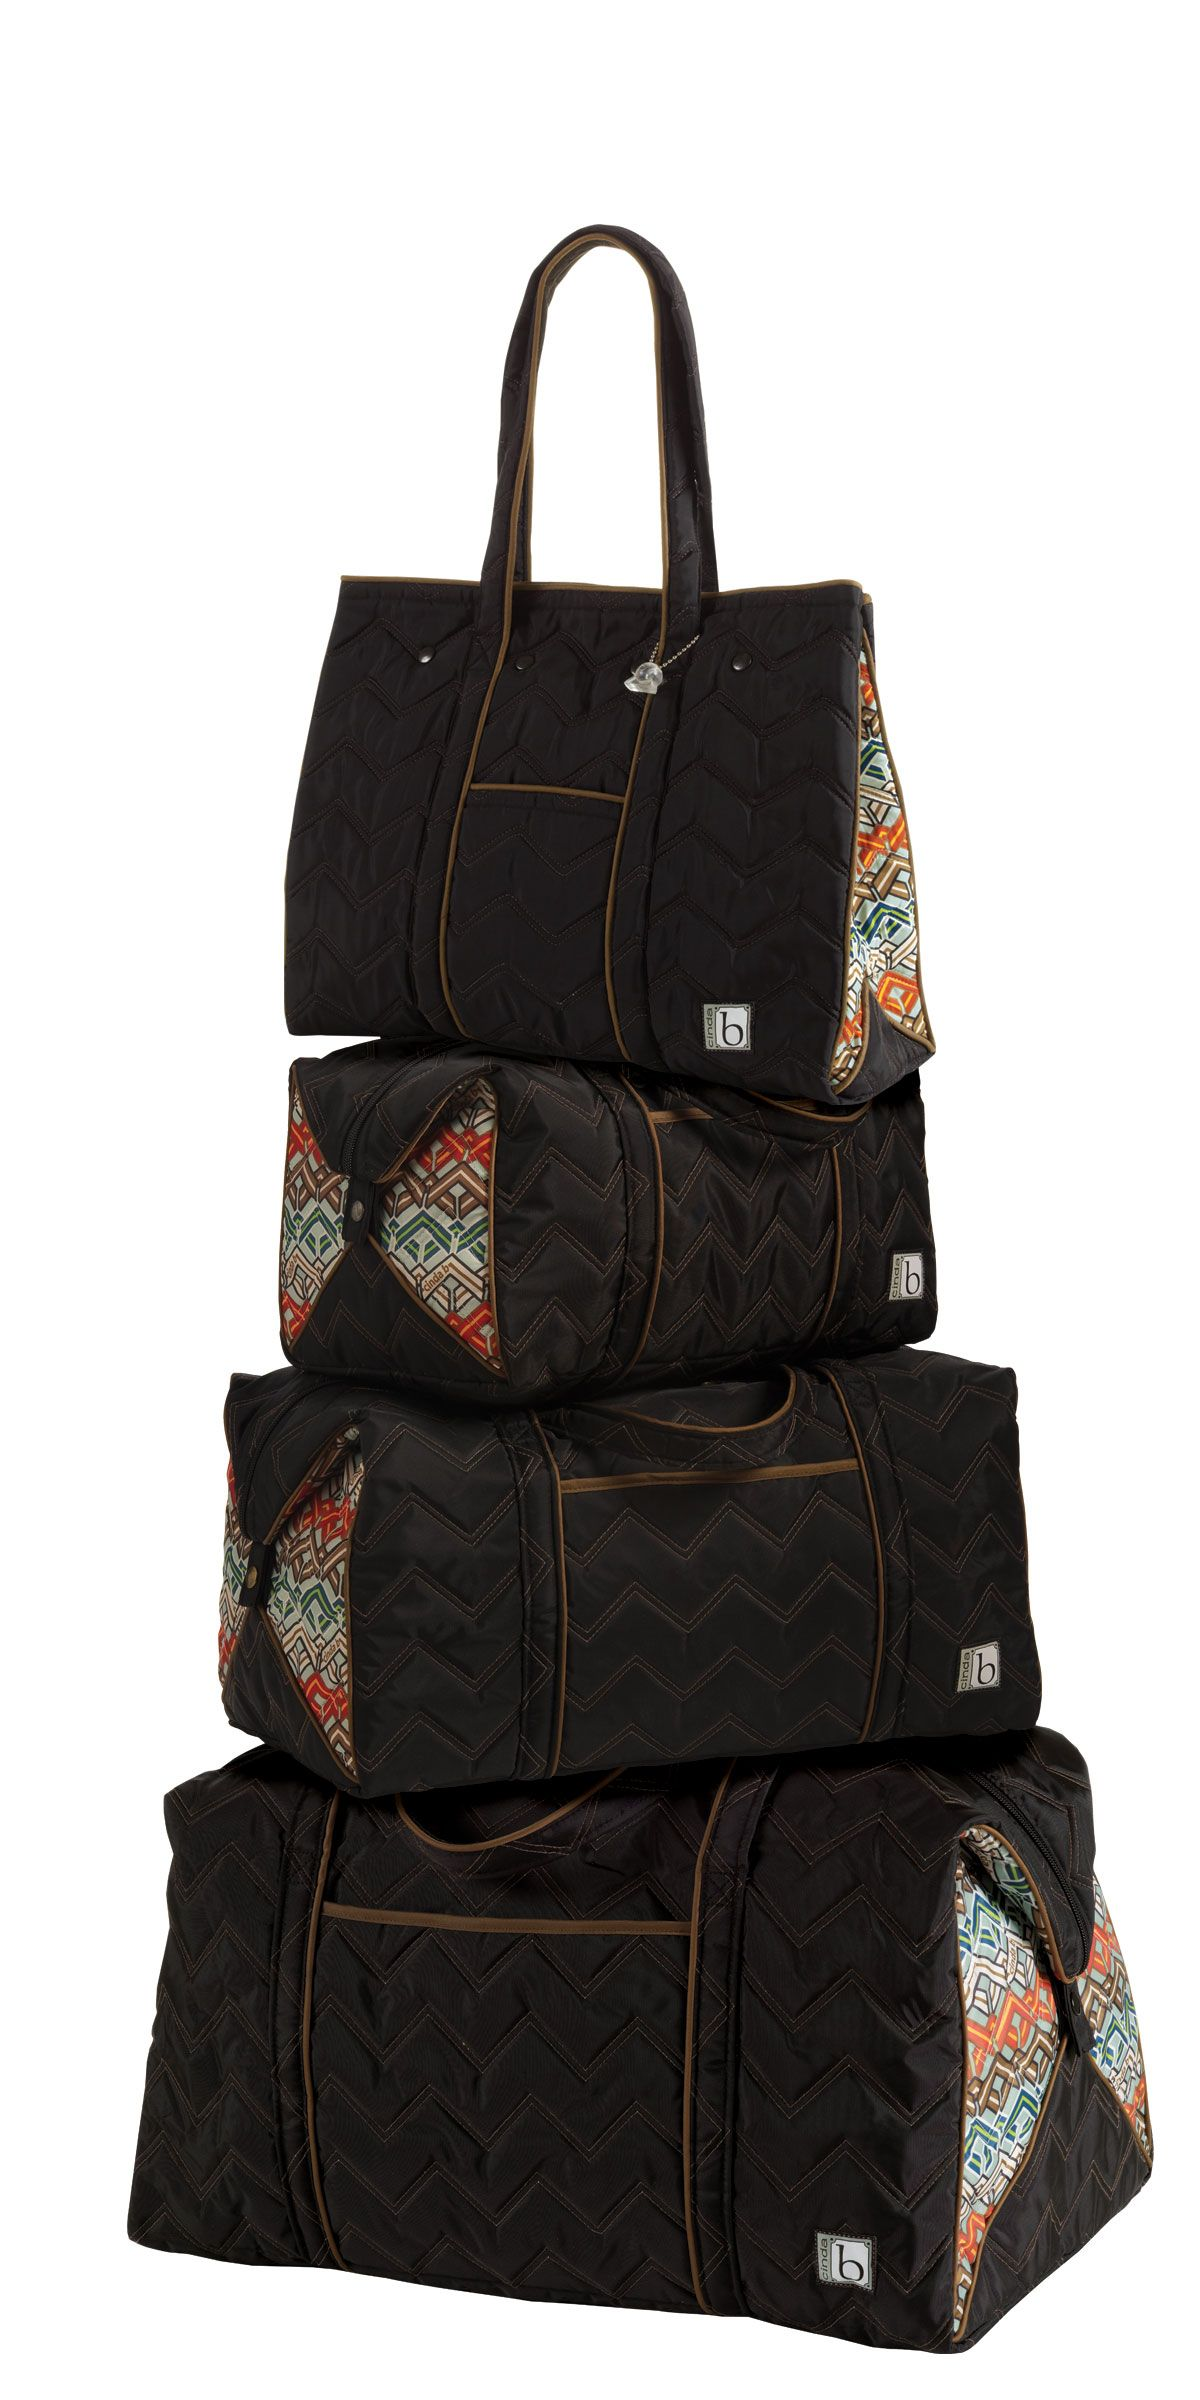 now THAT'S a travel stack! cinda b Travel Bags in Ravinia